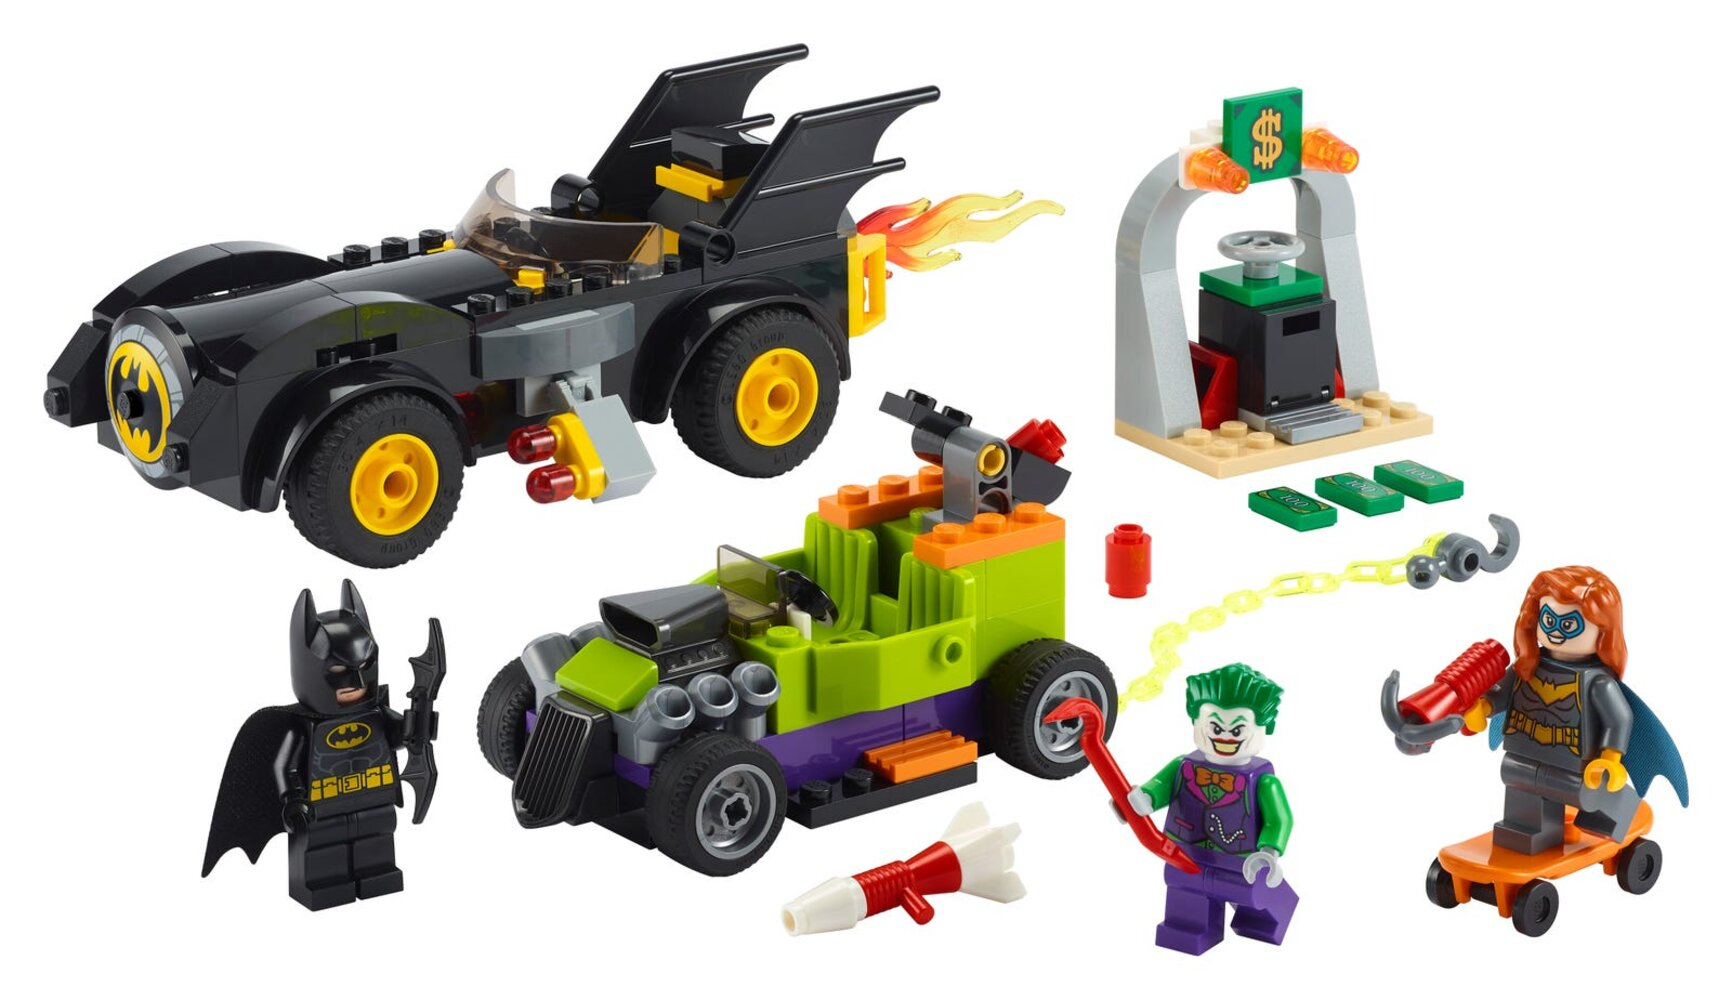 Batman vs. The Joker: Batmobile Chase